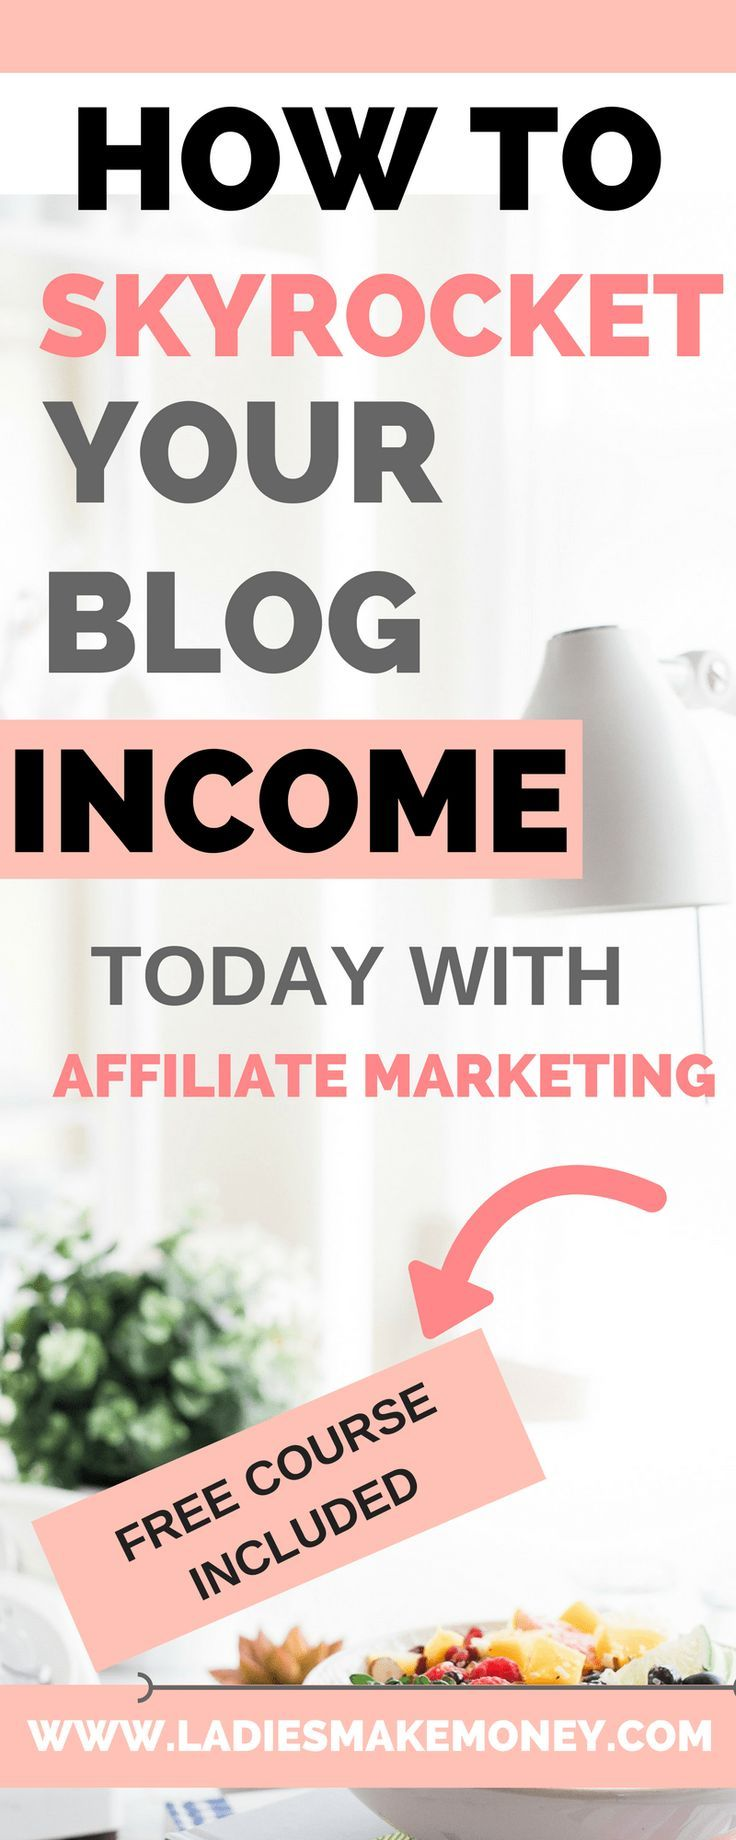 Affiliate marketing for beginners to make money The. best money making affiliate programs for bloggers. Making sense of affiliate marketing. Affiliate marketing programs. best affiliate programs with high commission. Do affiliates make money? Find out how to make money with affiliate programs.